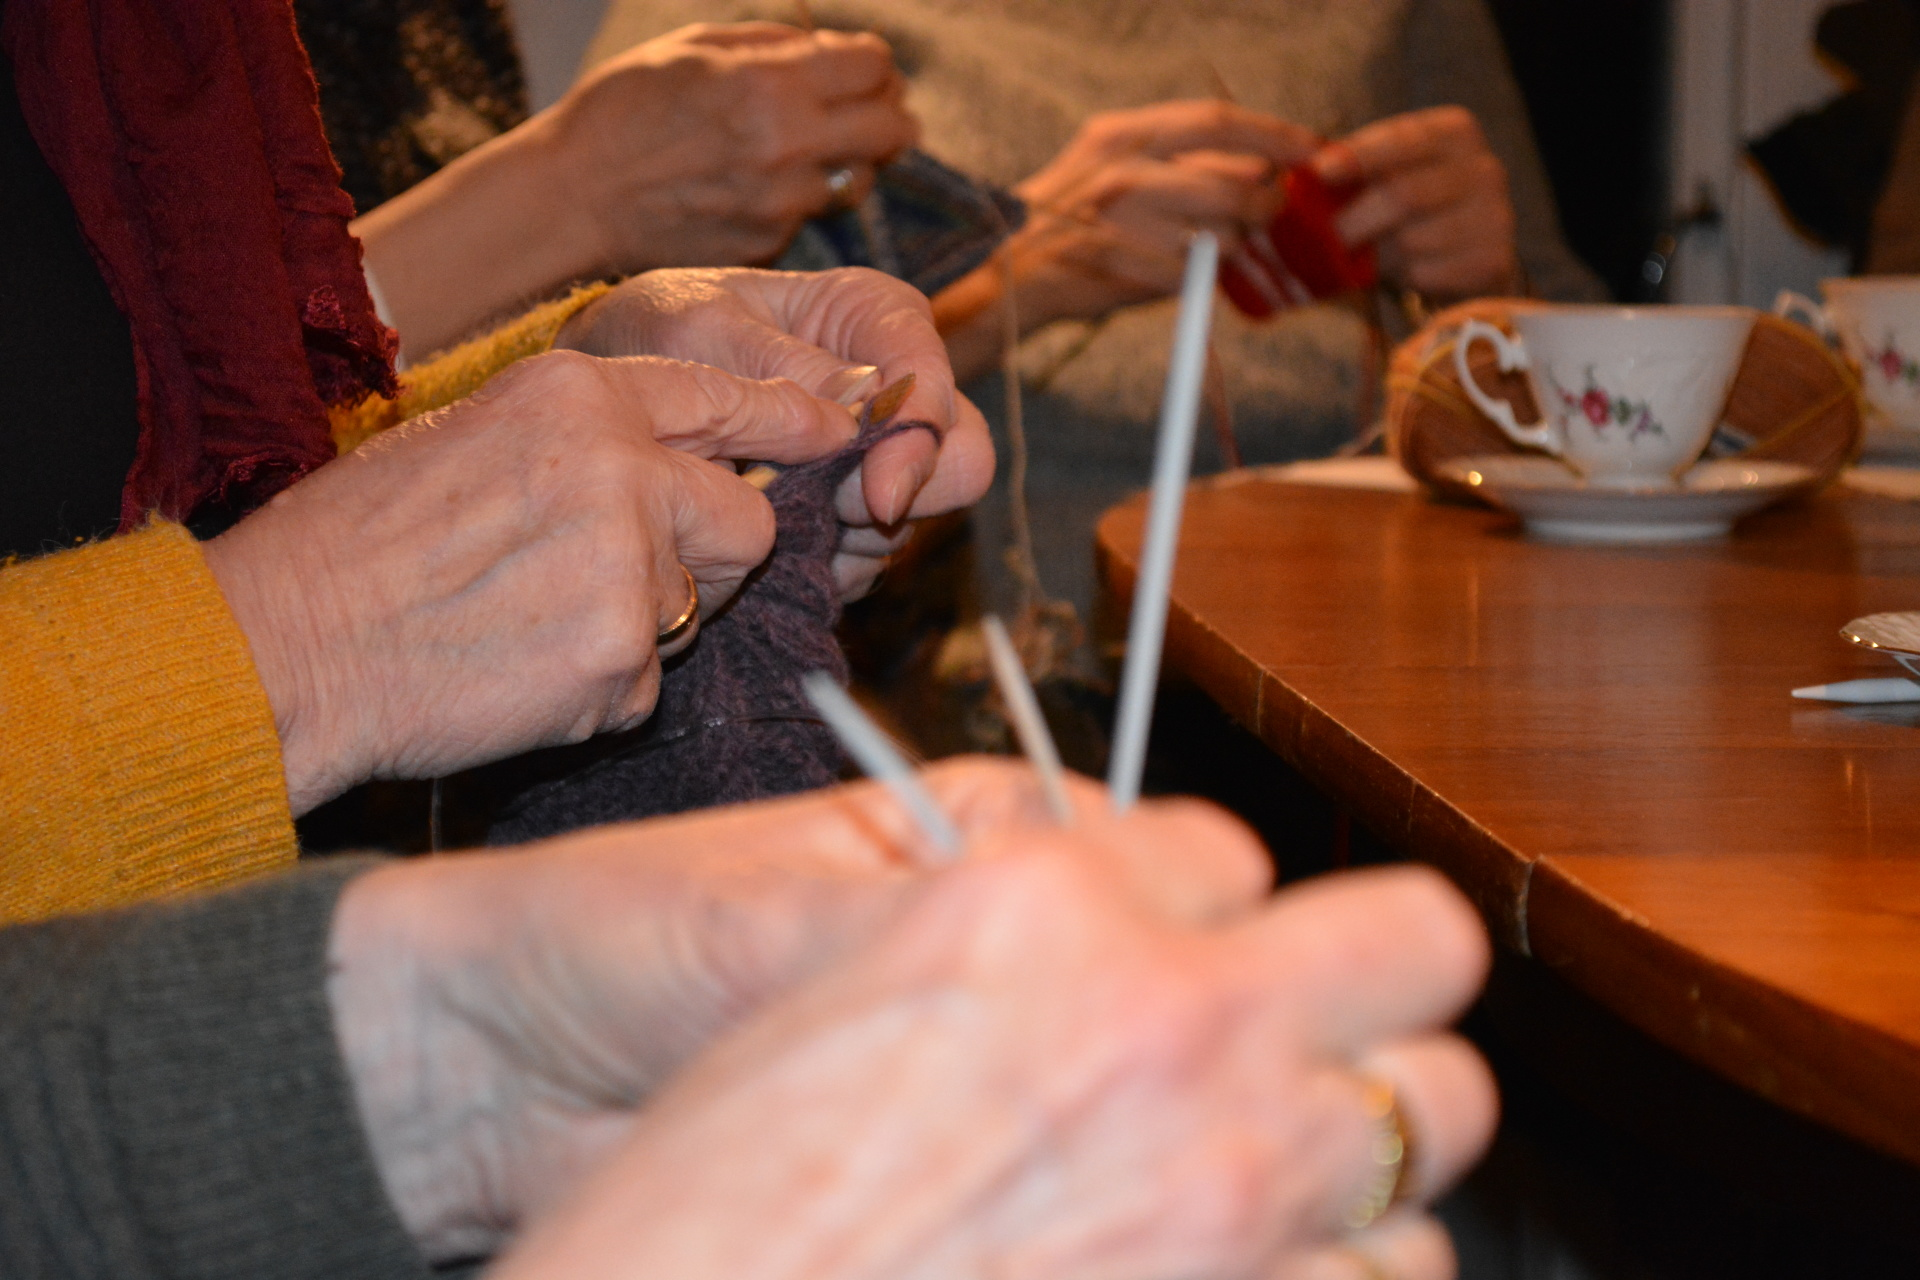 Busy hands, wonderful knitting